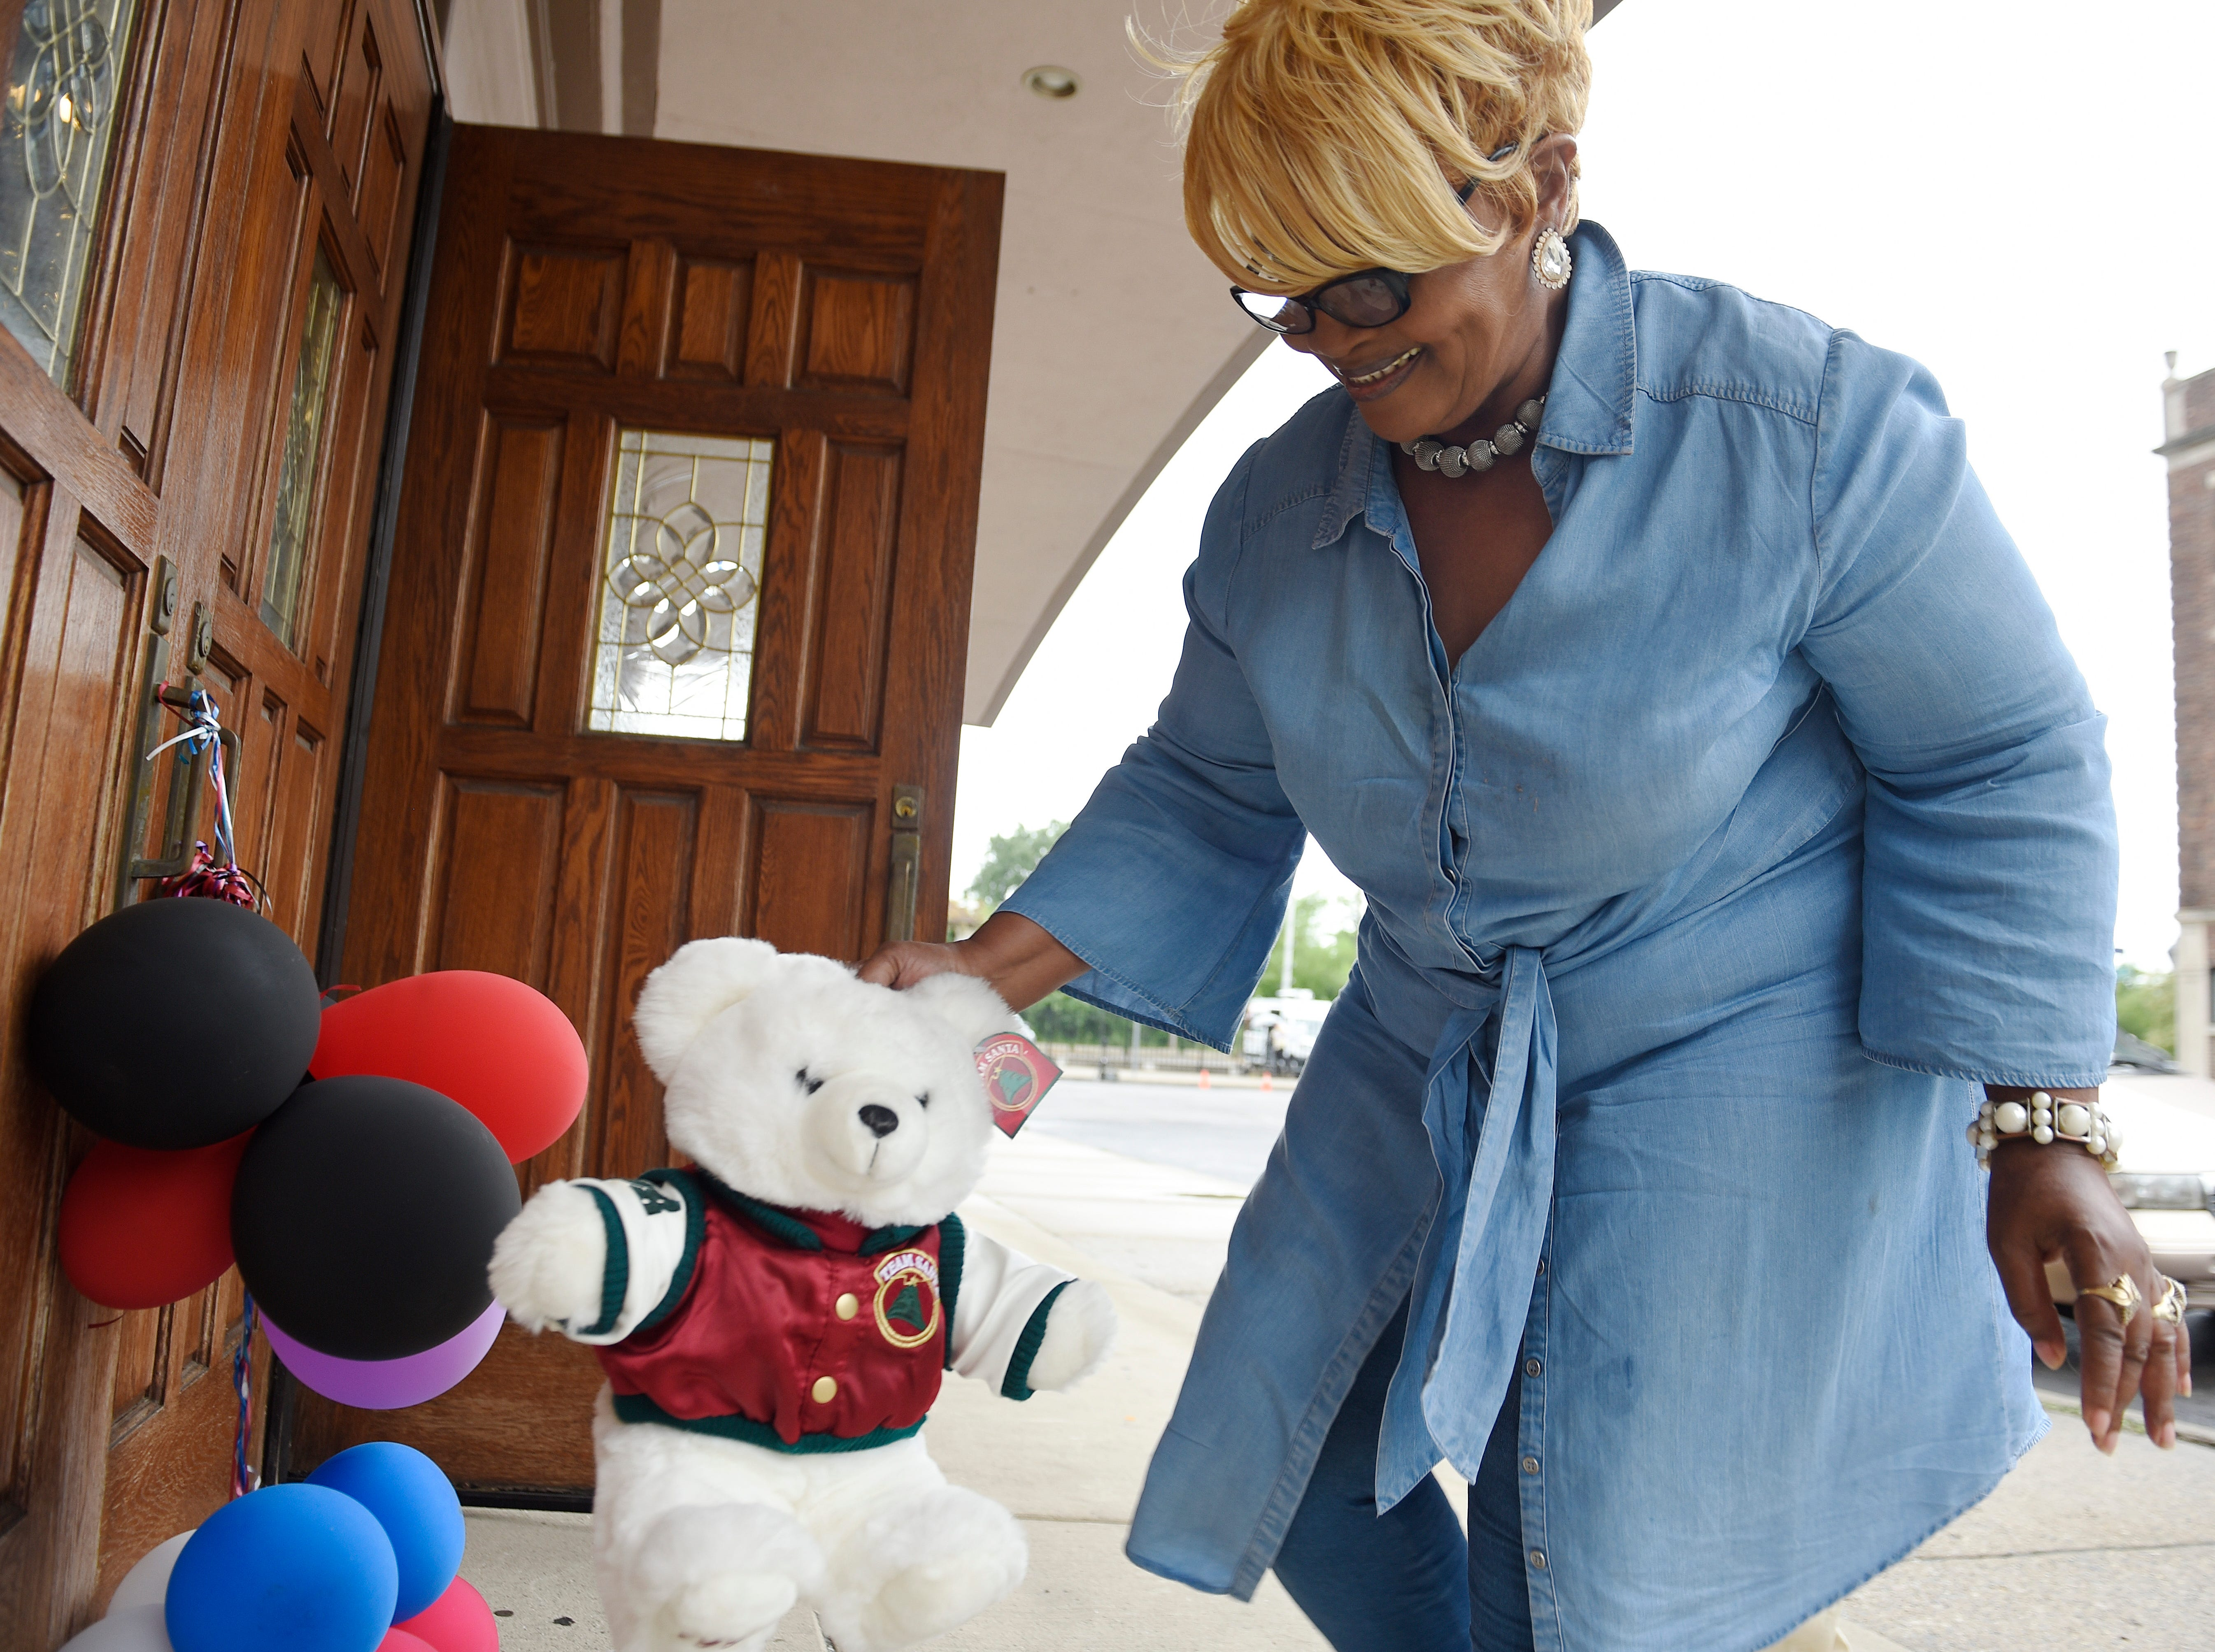 Sennettra Allen, 66, of Detroit pays her respects by leaving a teddy bear at a makeshift memorial outside New Bethel Baptist Church in Detroit, Aug. 16, 2018.